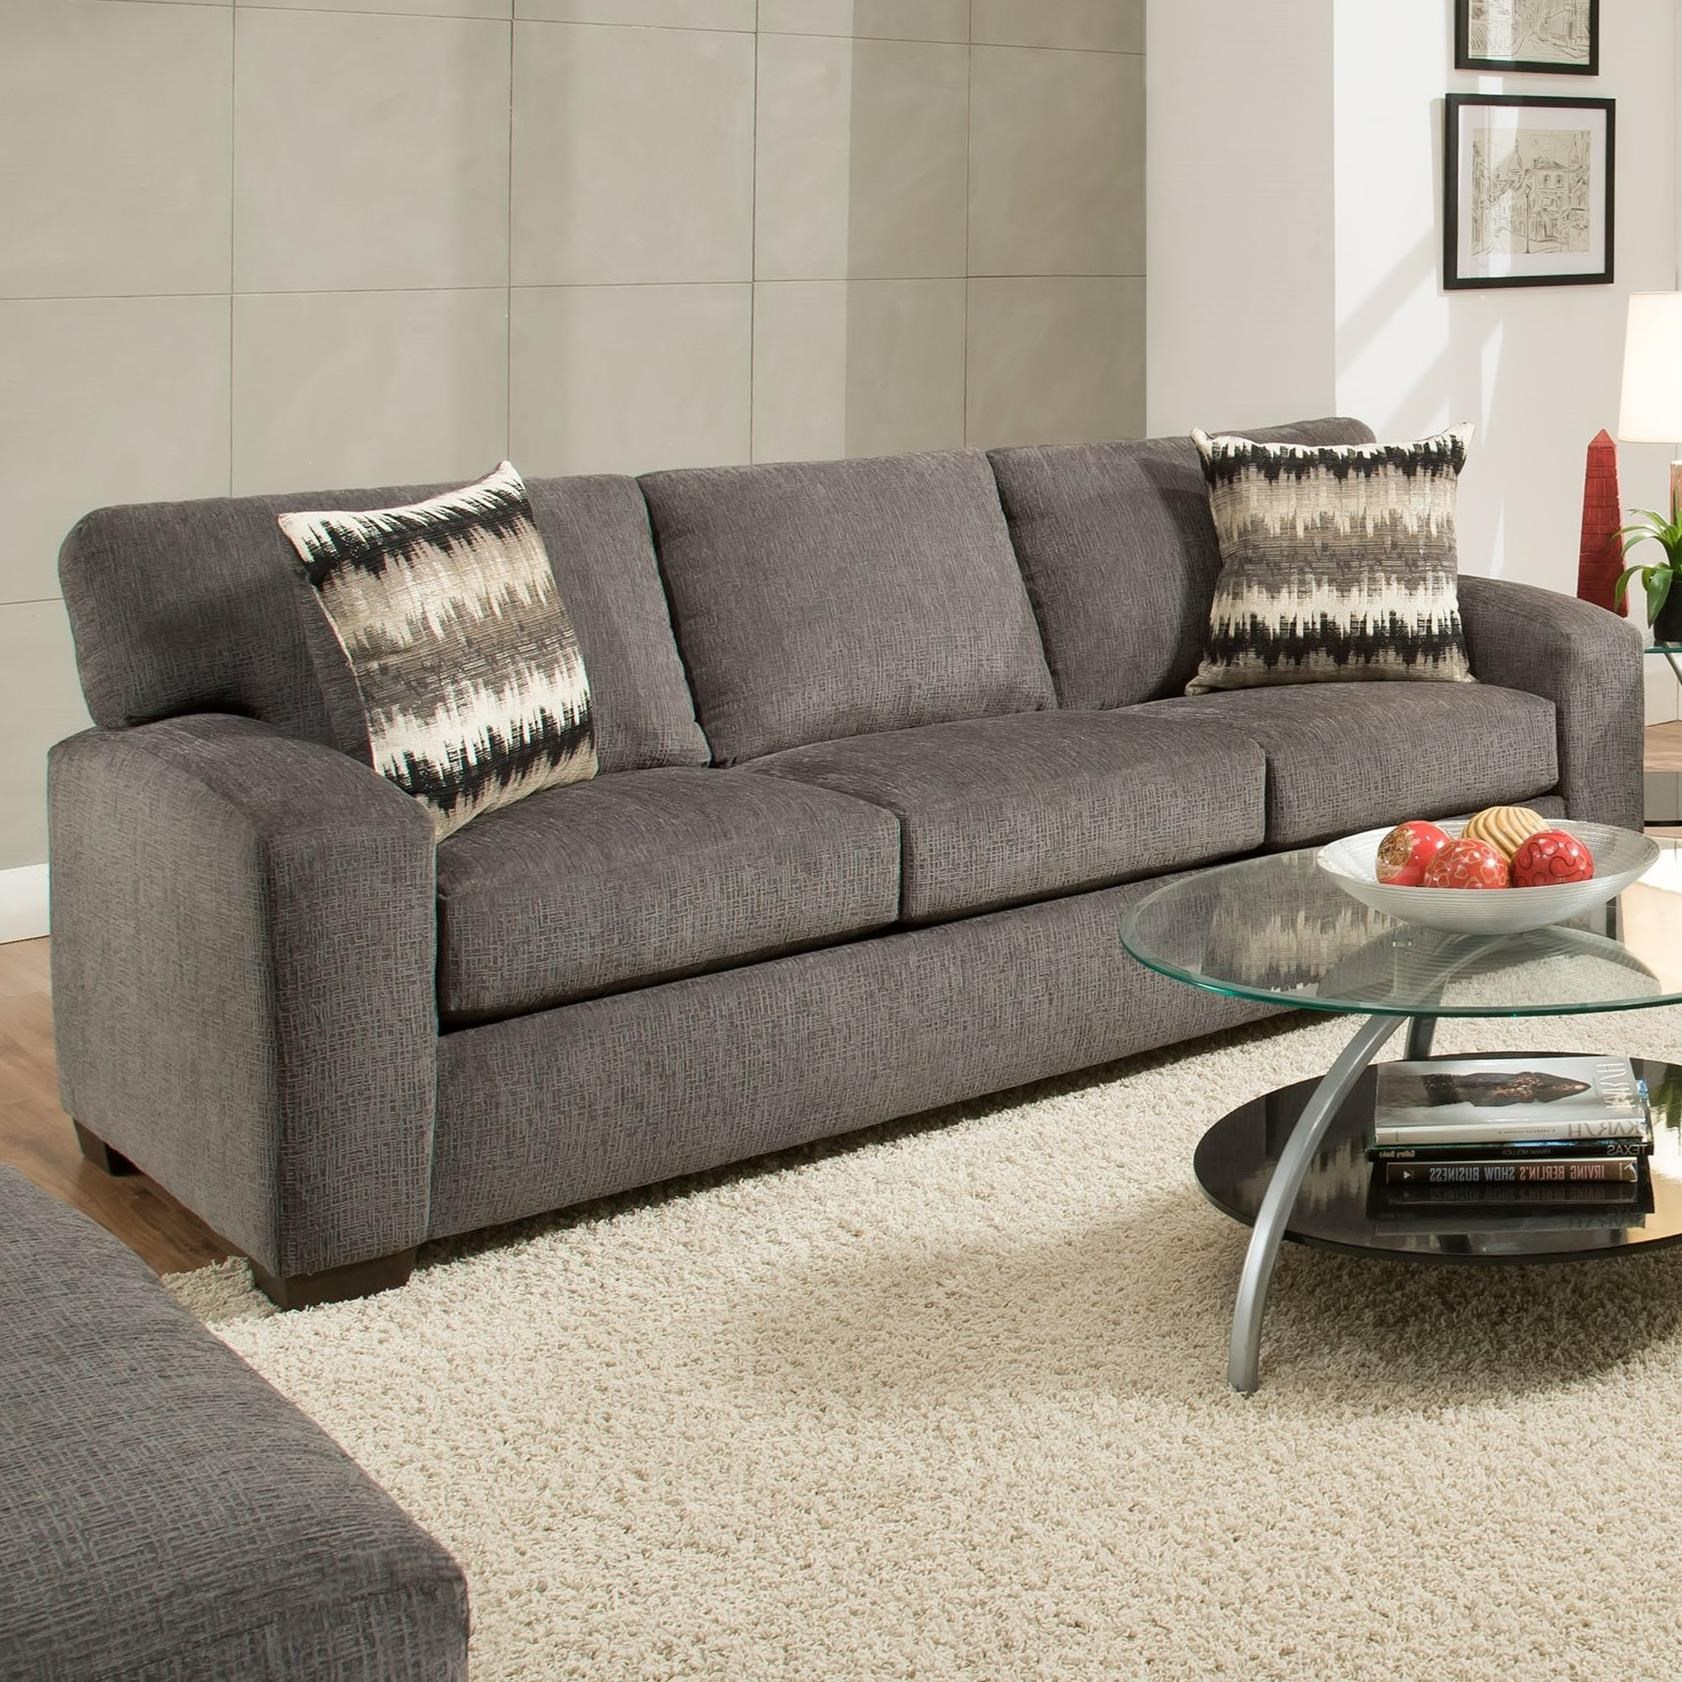 5250 Sleeper Sofa by Peak Living at Prime Brothers Furniture